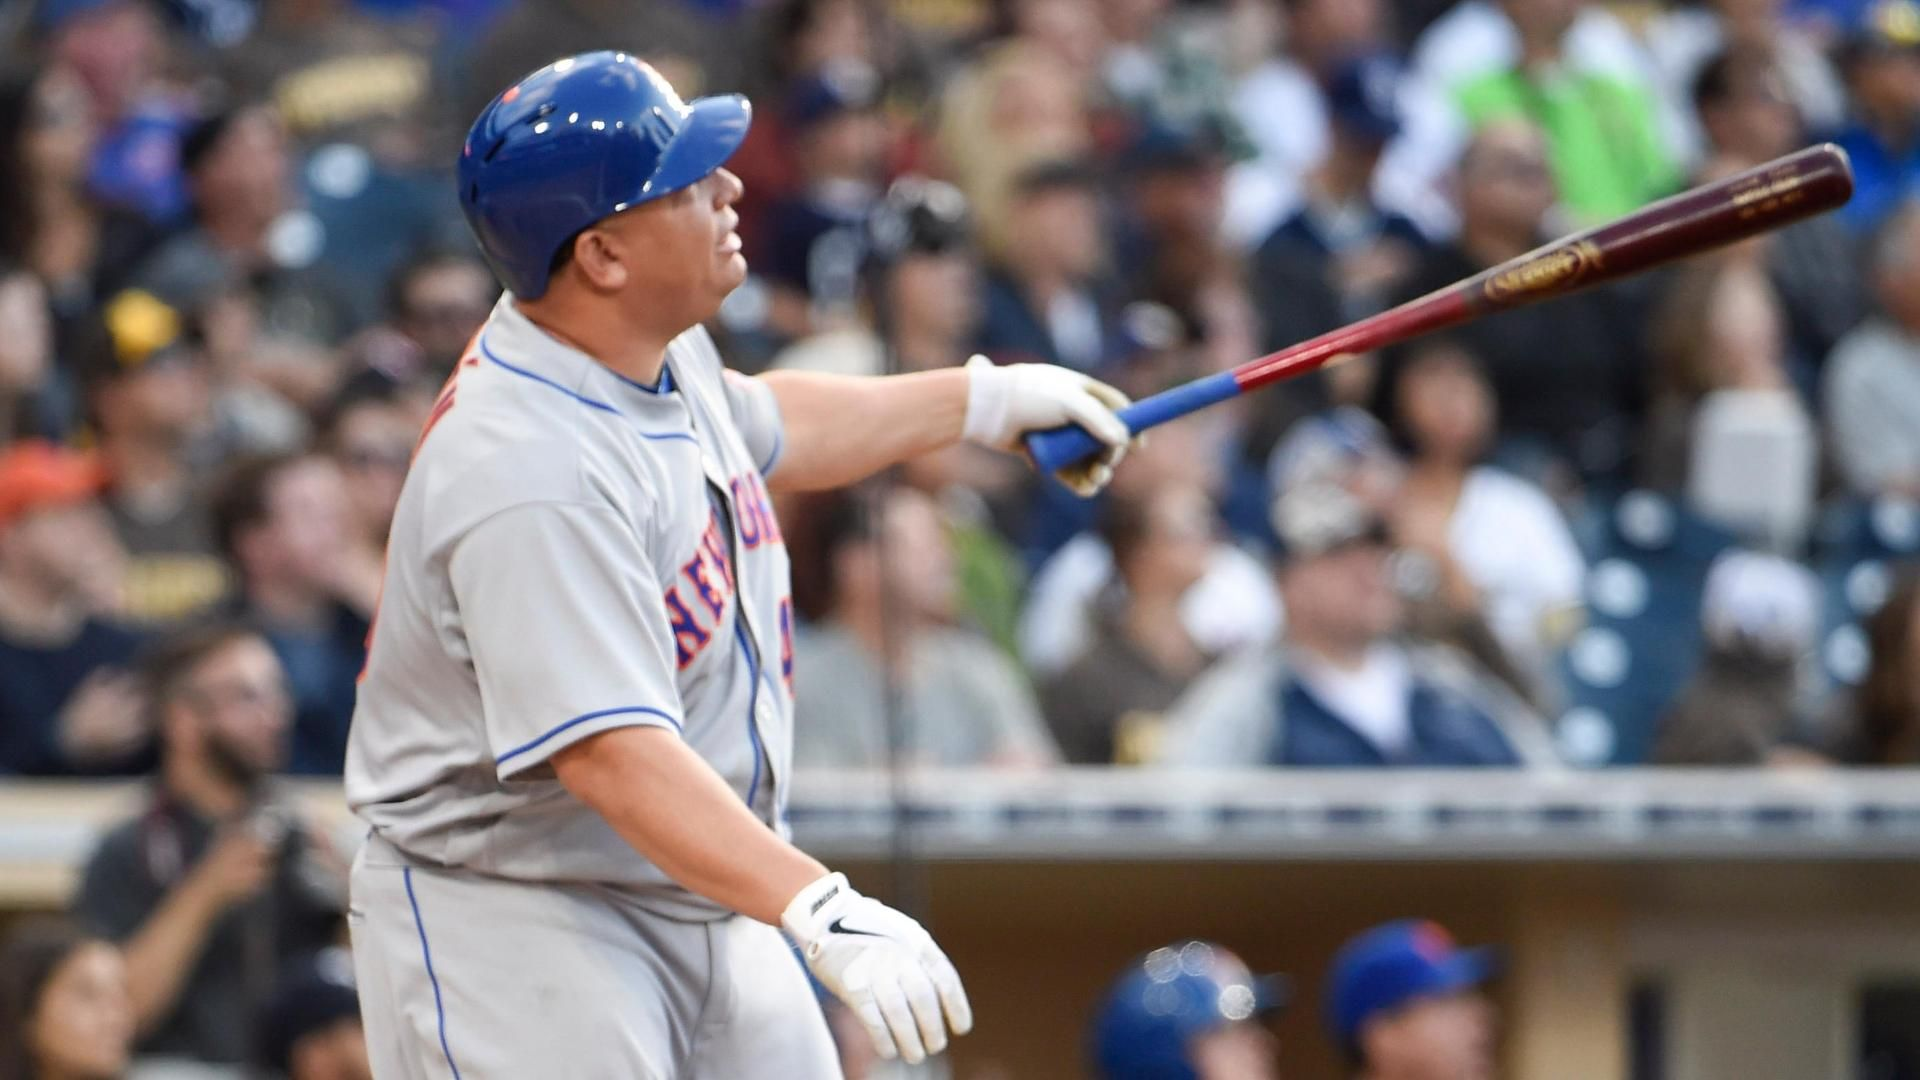 Bartolo Colon has never homered... until today!